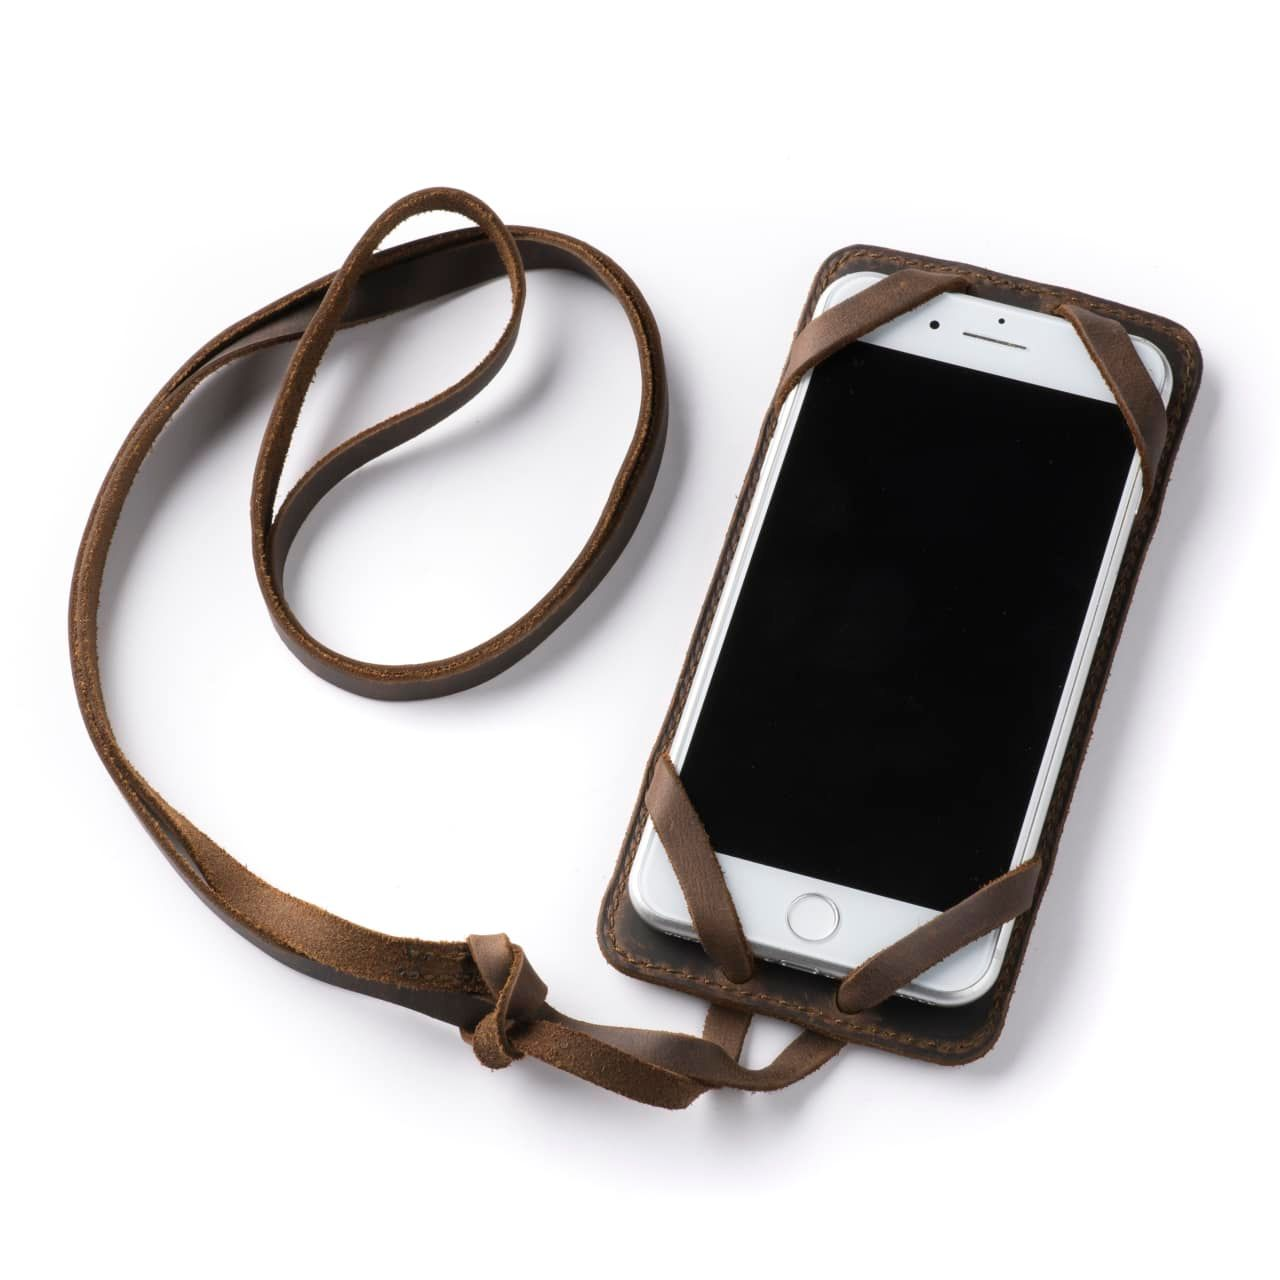 Leather iPhone 8+ Case in Color Dark Coffee Brown with the Lanyard attached front angle with phone in the case